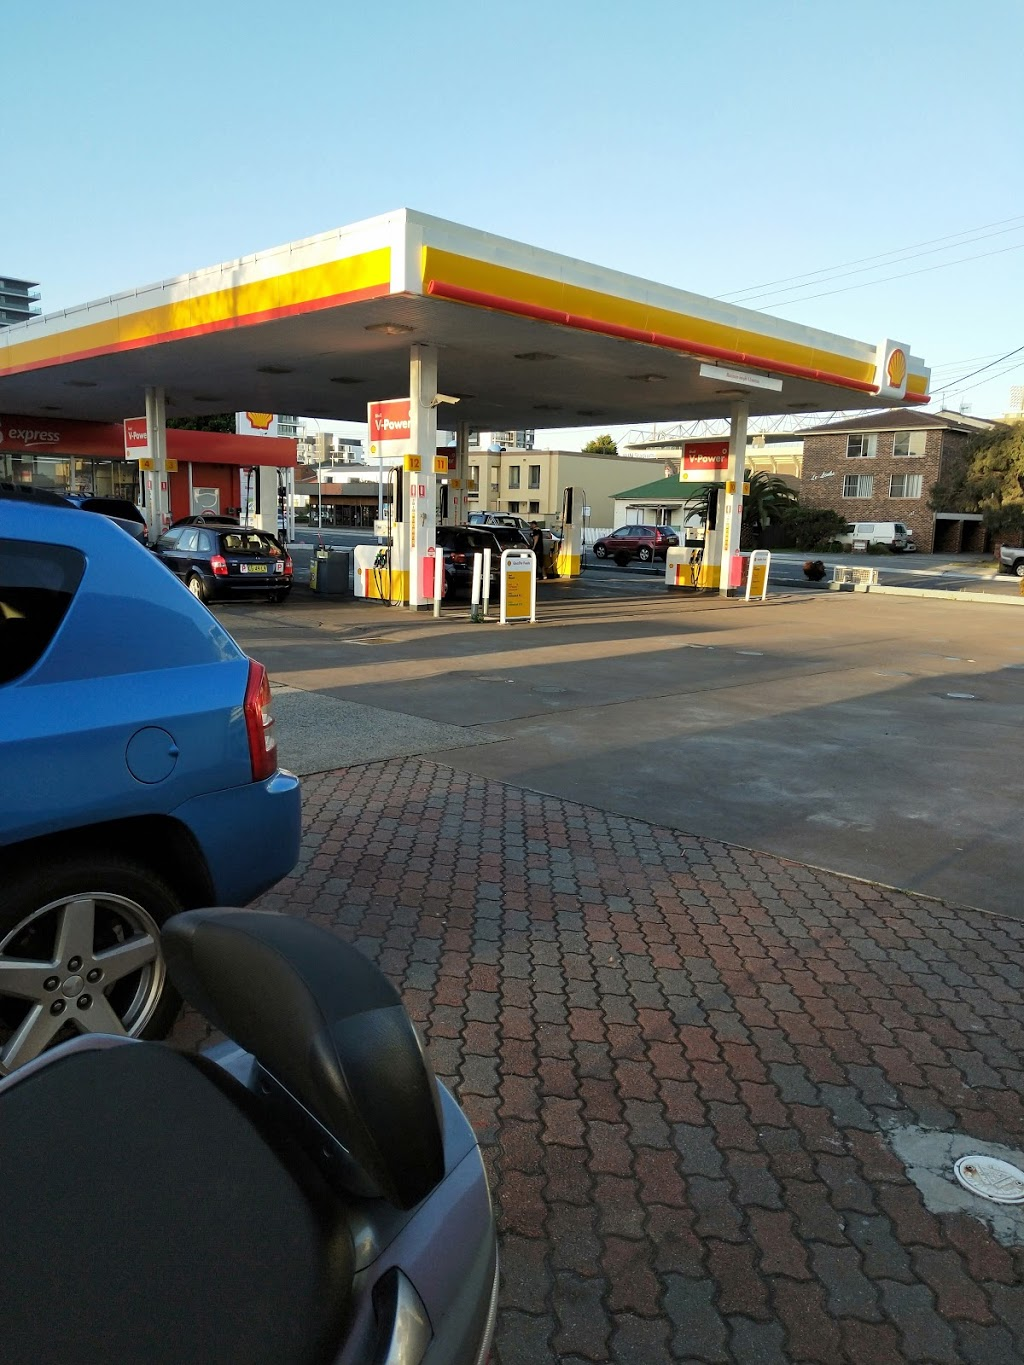 Coles Express Wollongong | gas station | 142-148 Corrimal St, Wollongong NSW 2500, Australia | 0242257012 OR +61 2 4225 7012